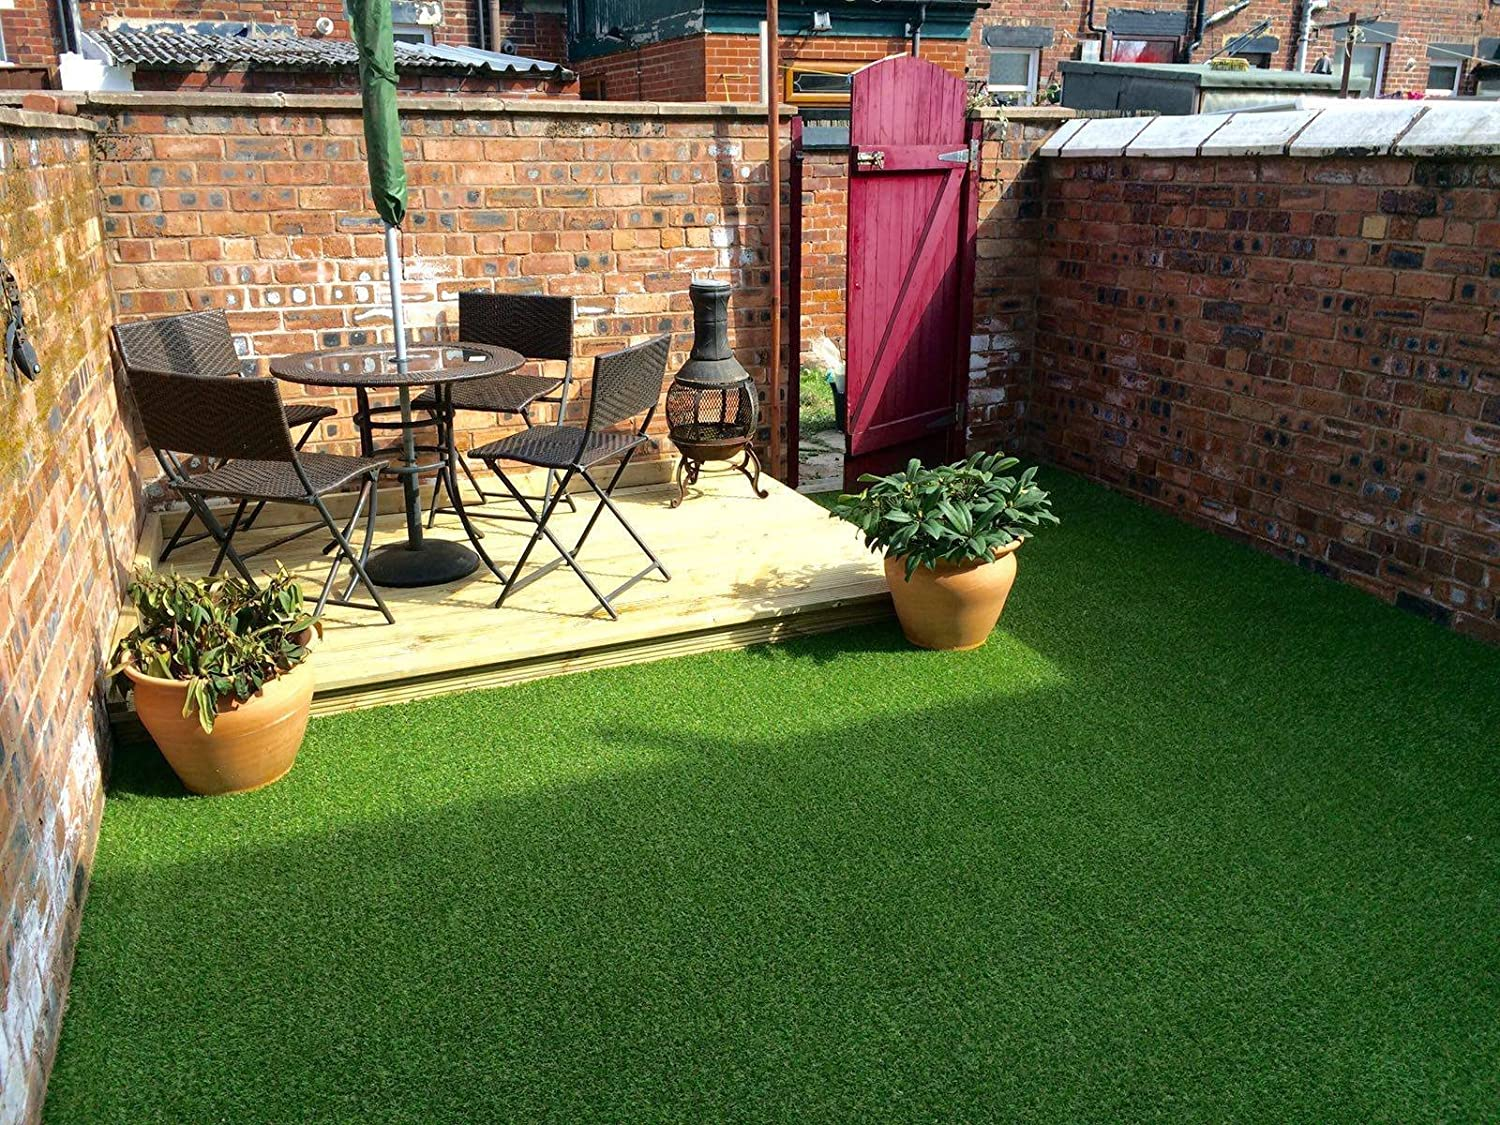 2m x 1.5m Seville 15mm Pile Height Artificial Grass | 4 ft 11 Inch x 6 ft 5 Inch | 150cm x 200cm | 59 x 79 Inches Tuda Grass Direct